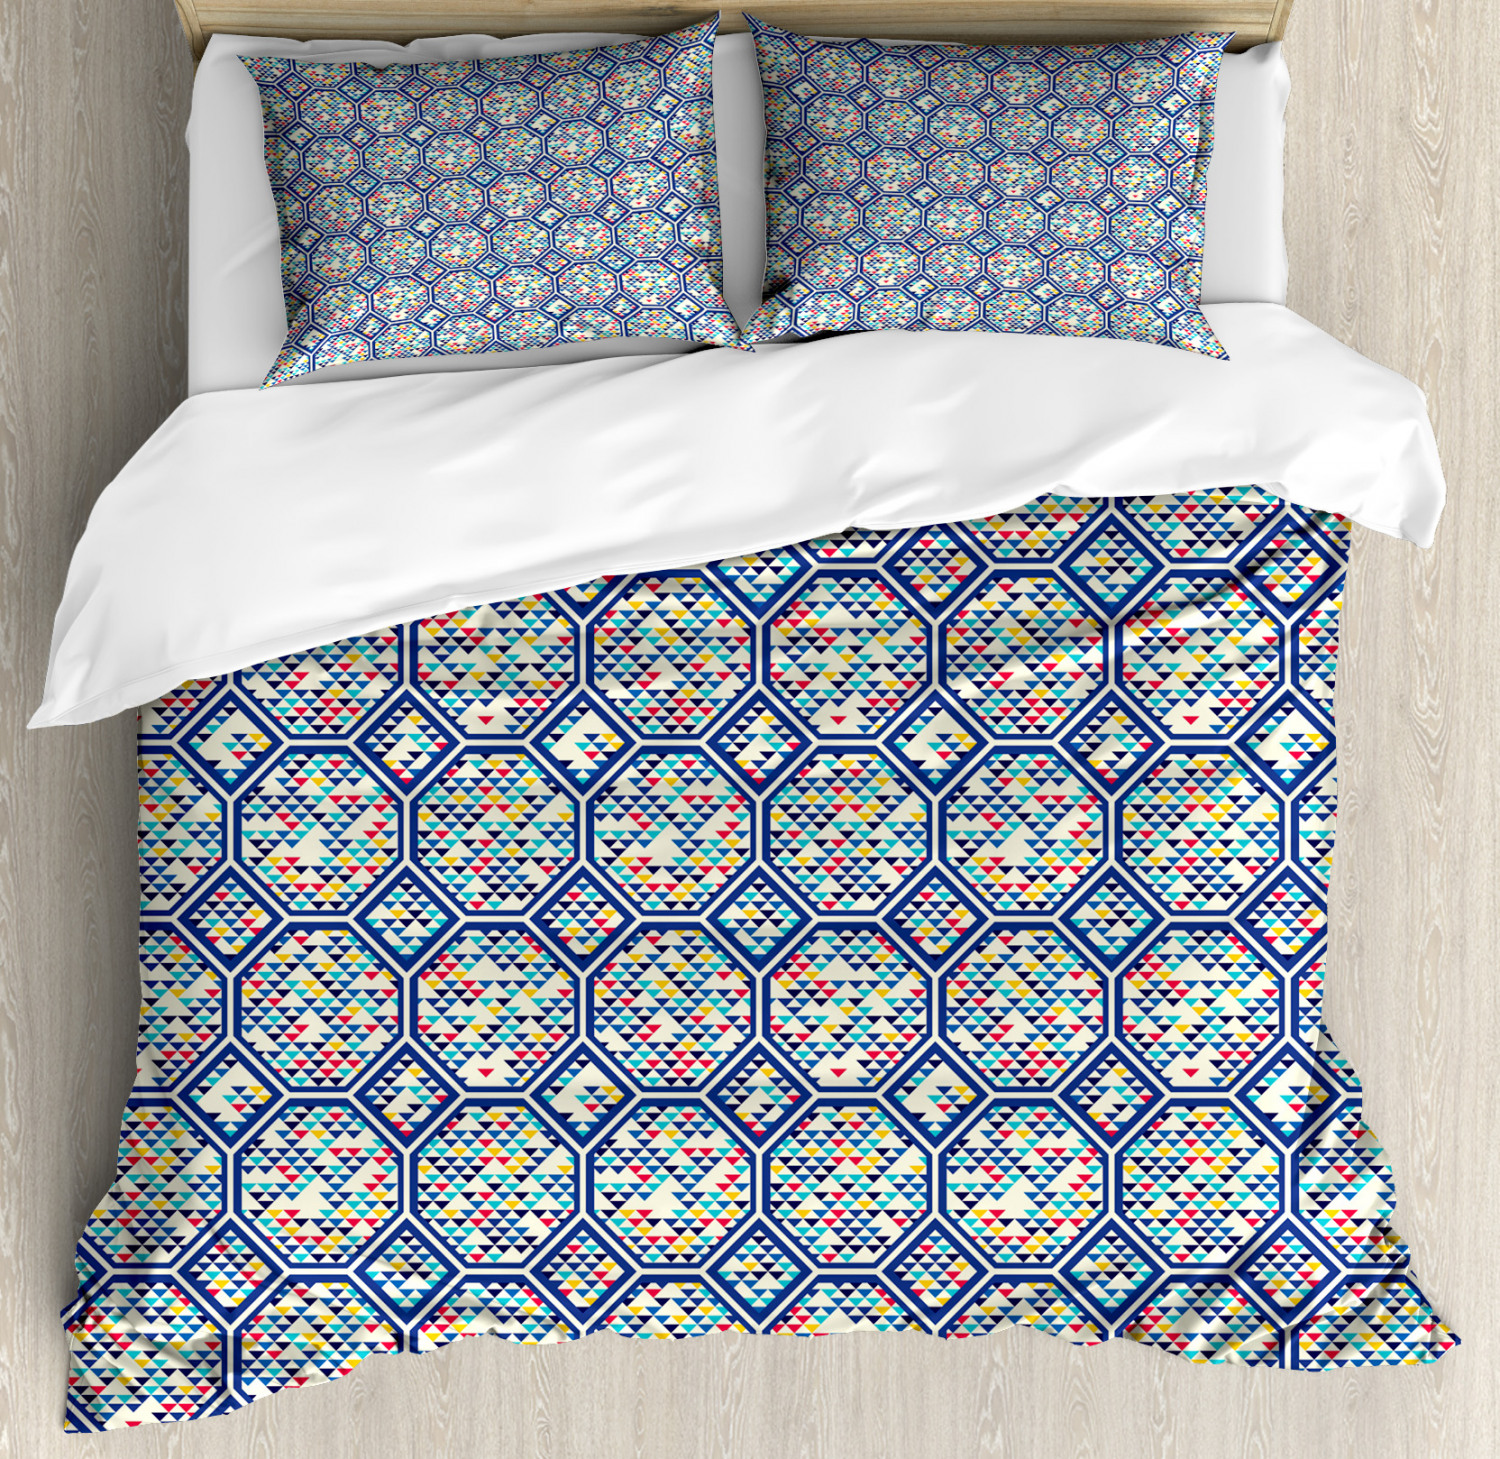 Primary Colors Duvet Cover Set Twin Queen King Sizes With